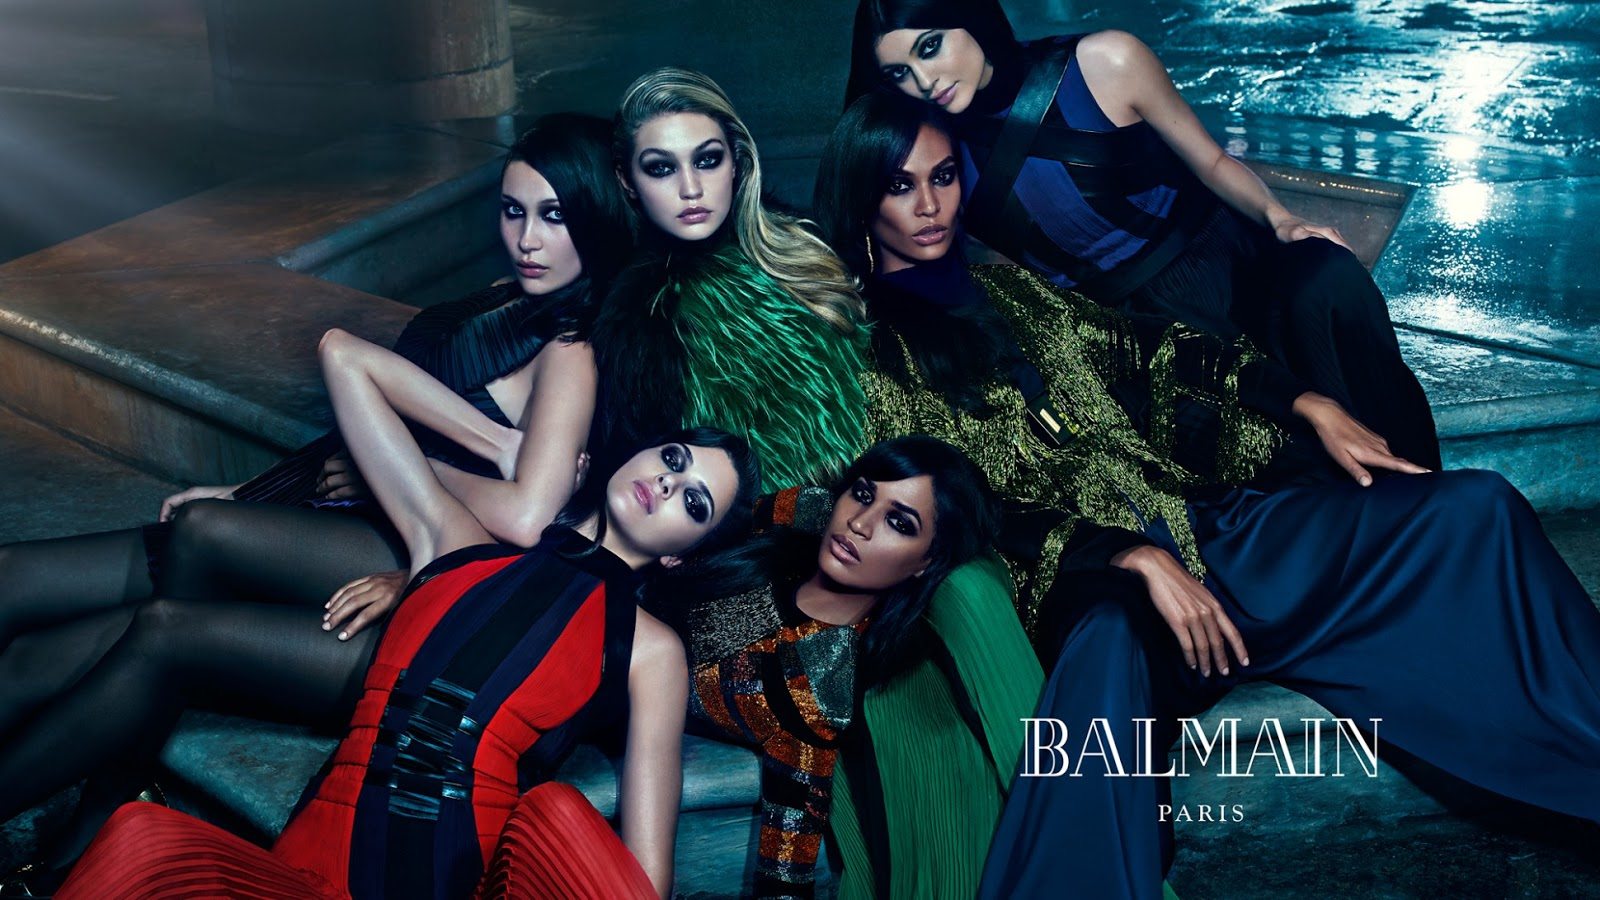 8b4a31d7058c Balmain s Fall 2015 Ads Campaign  A Sister (And Brother) Act - Sugareal